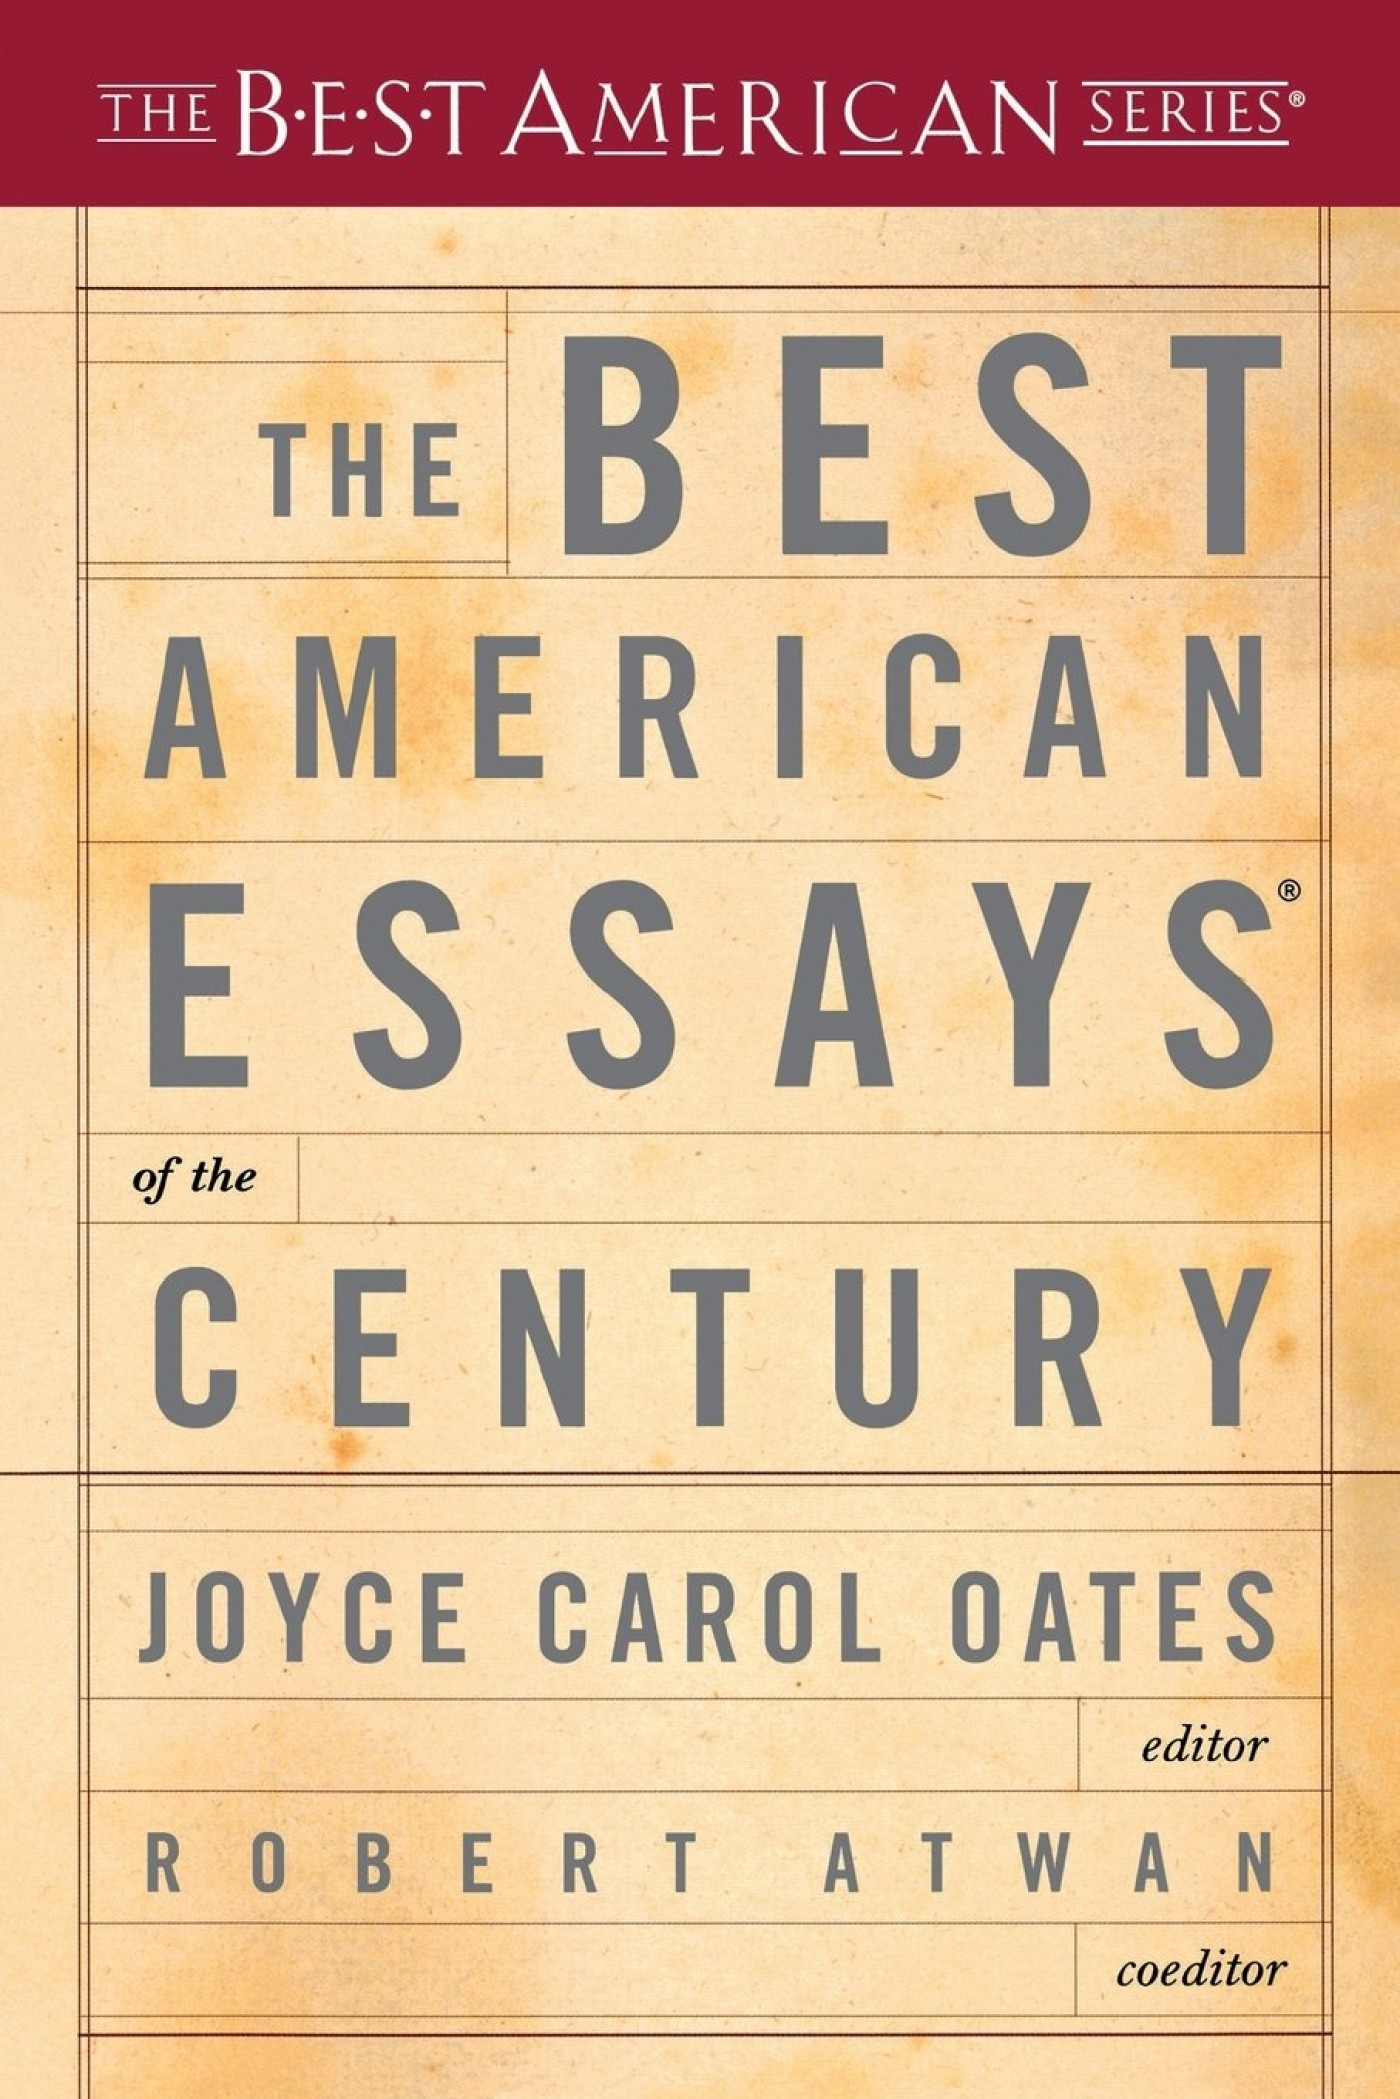 002 The Best American Essays Essay Example Wonderful 2013 Pdf Download Of Century Sparknotes 2017 1400